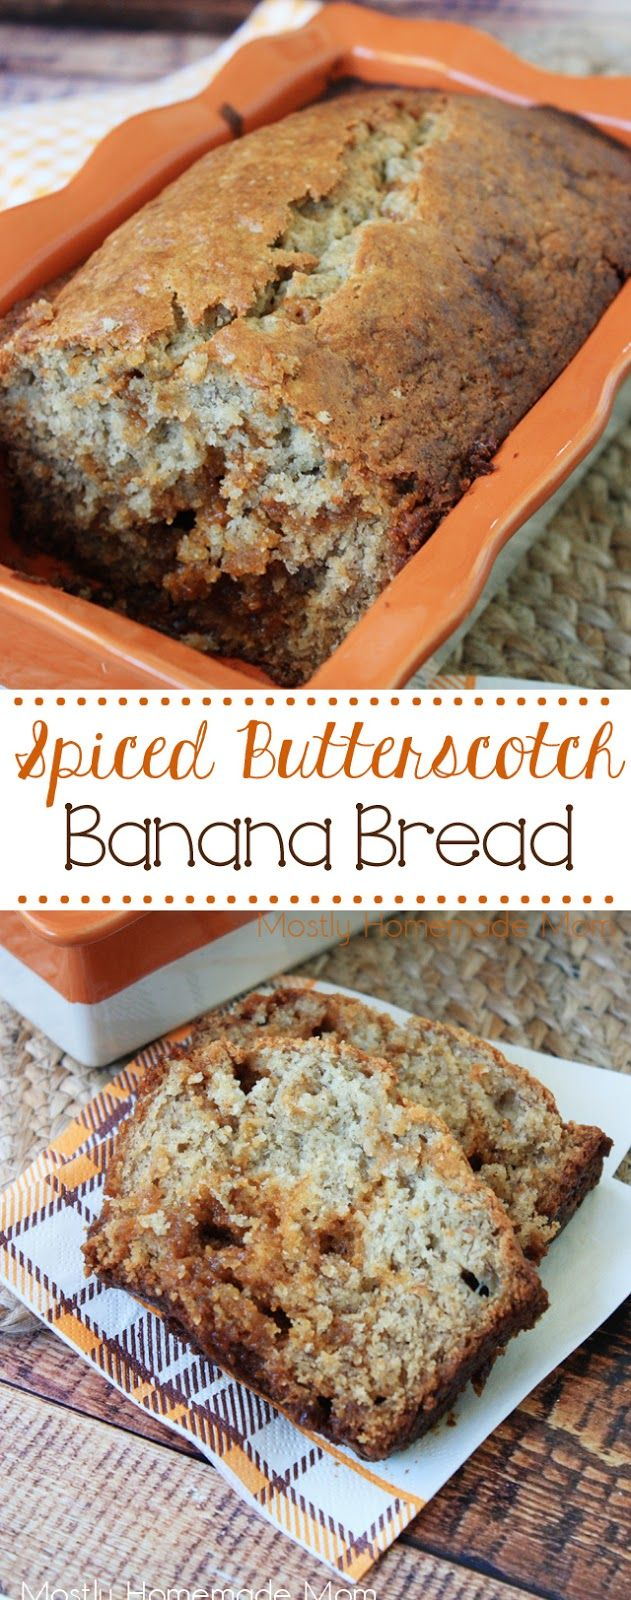 Spiced Butterscotch Banana Bread - makes two loaves! Delicious moist banana bread with cinnamon and allspice, and lots of butterscotch chips. Keep one and give one to a friend!